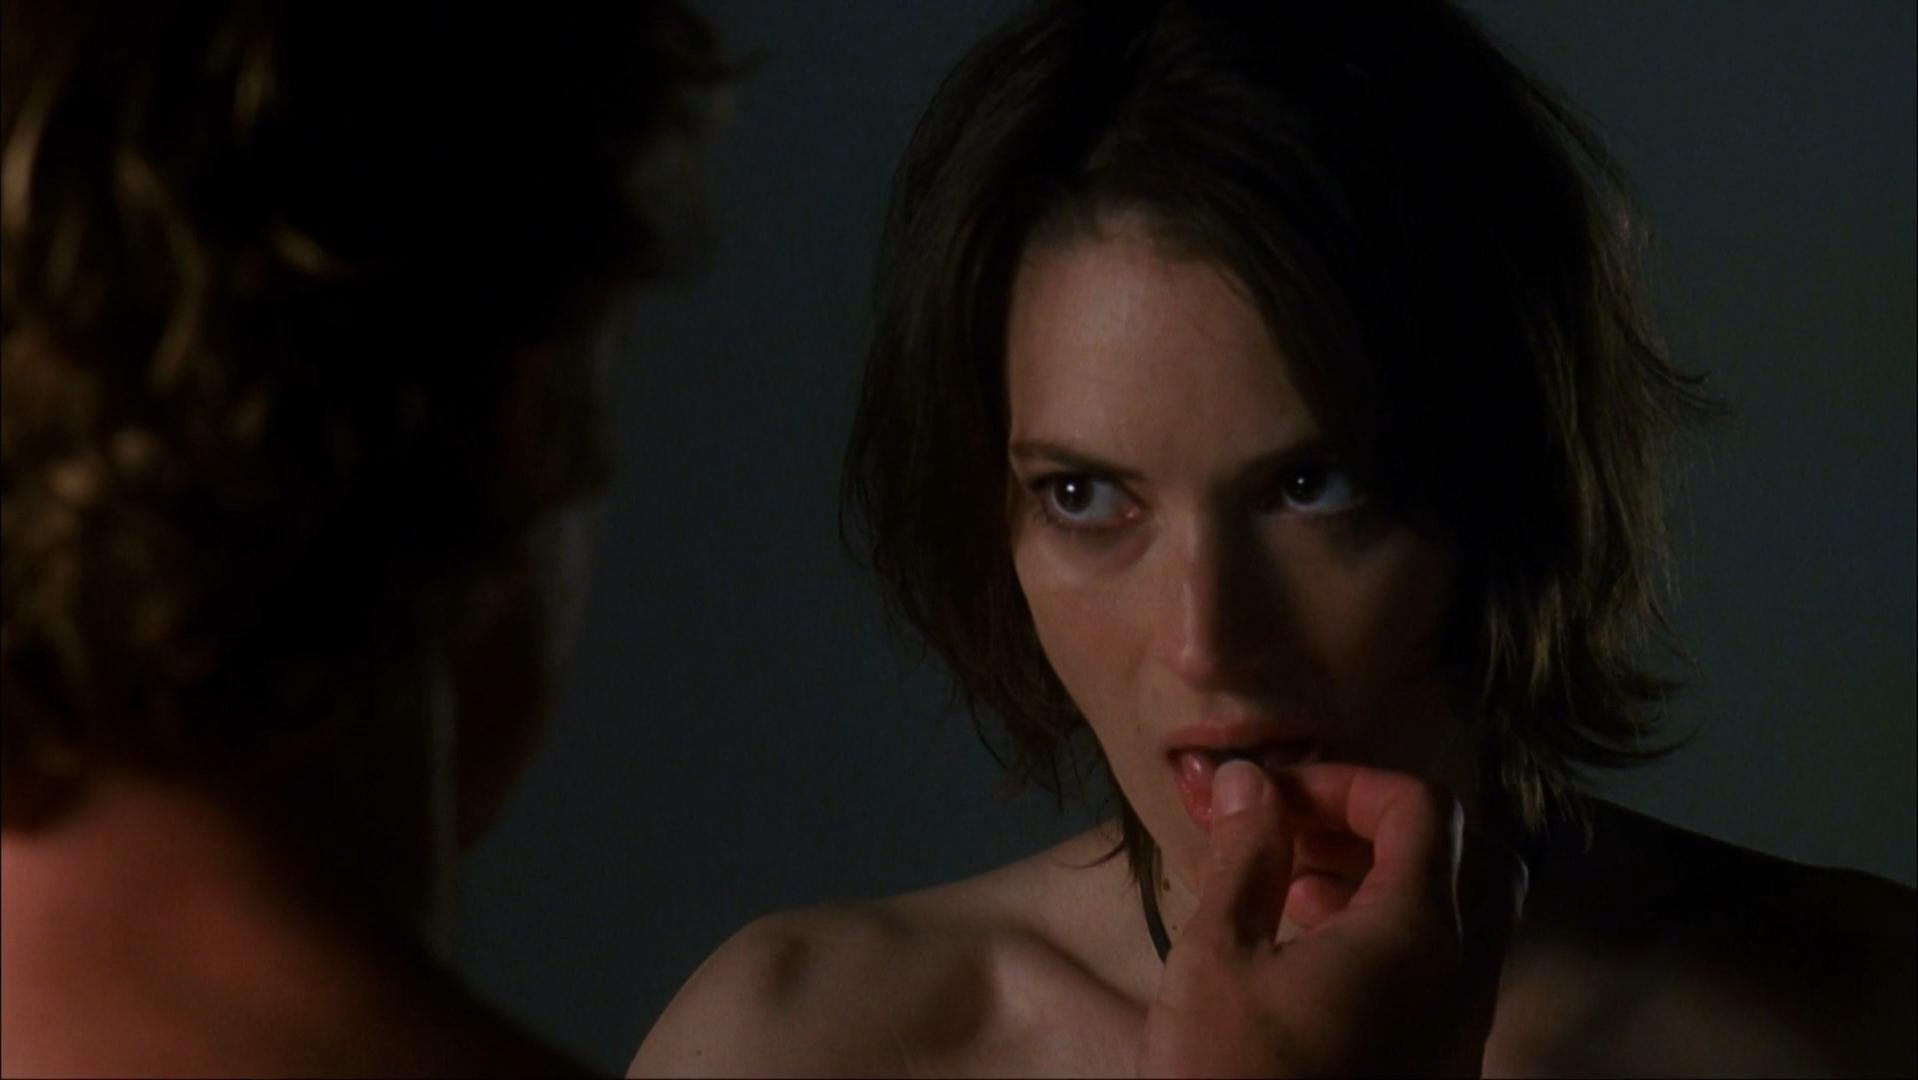 Winona ryder nude sex and death 101